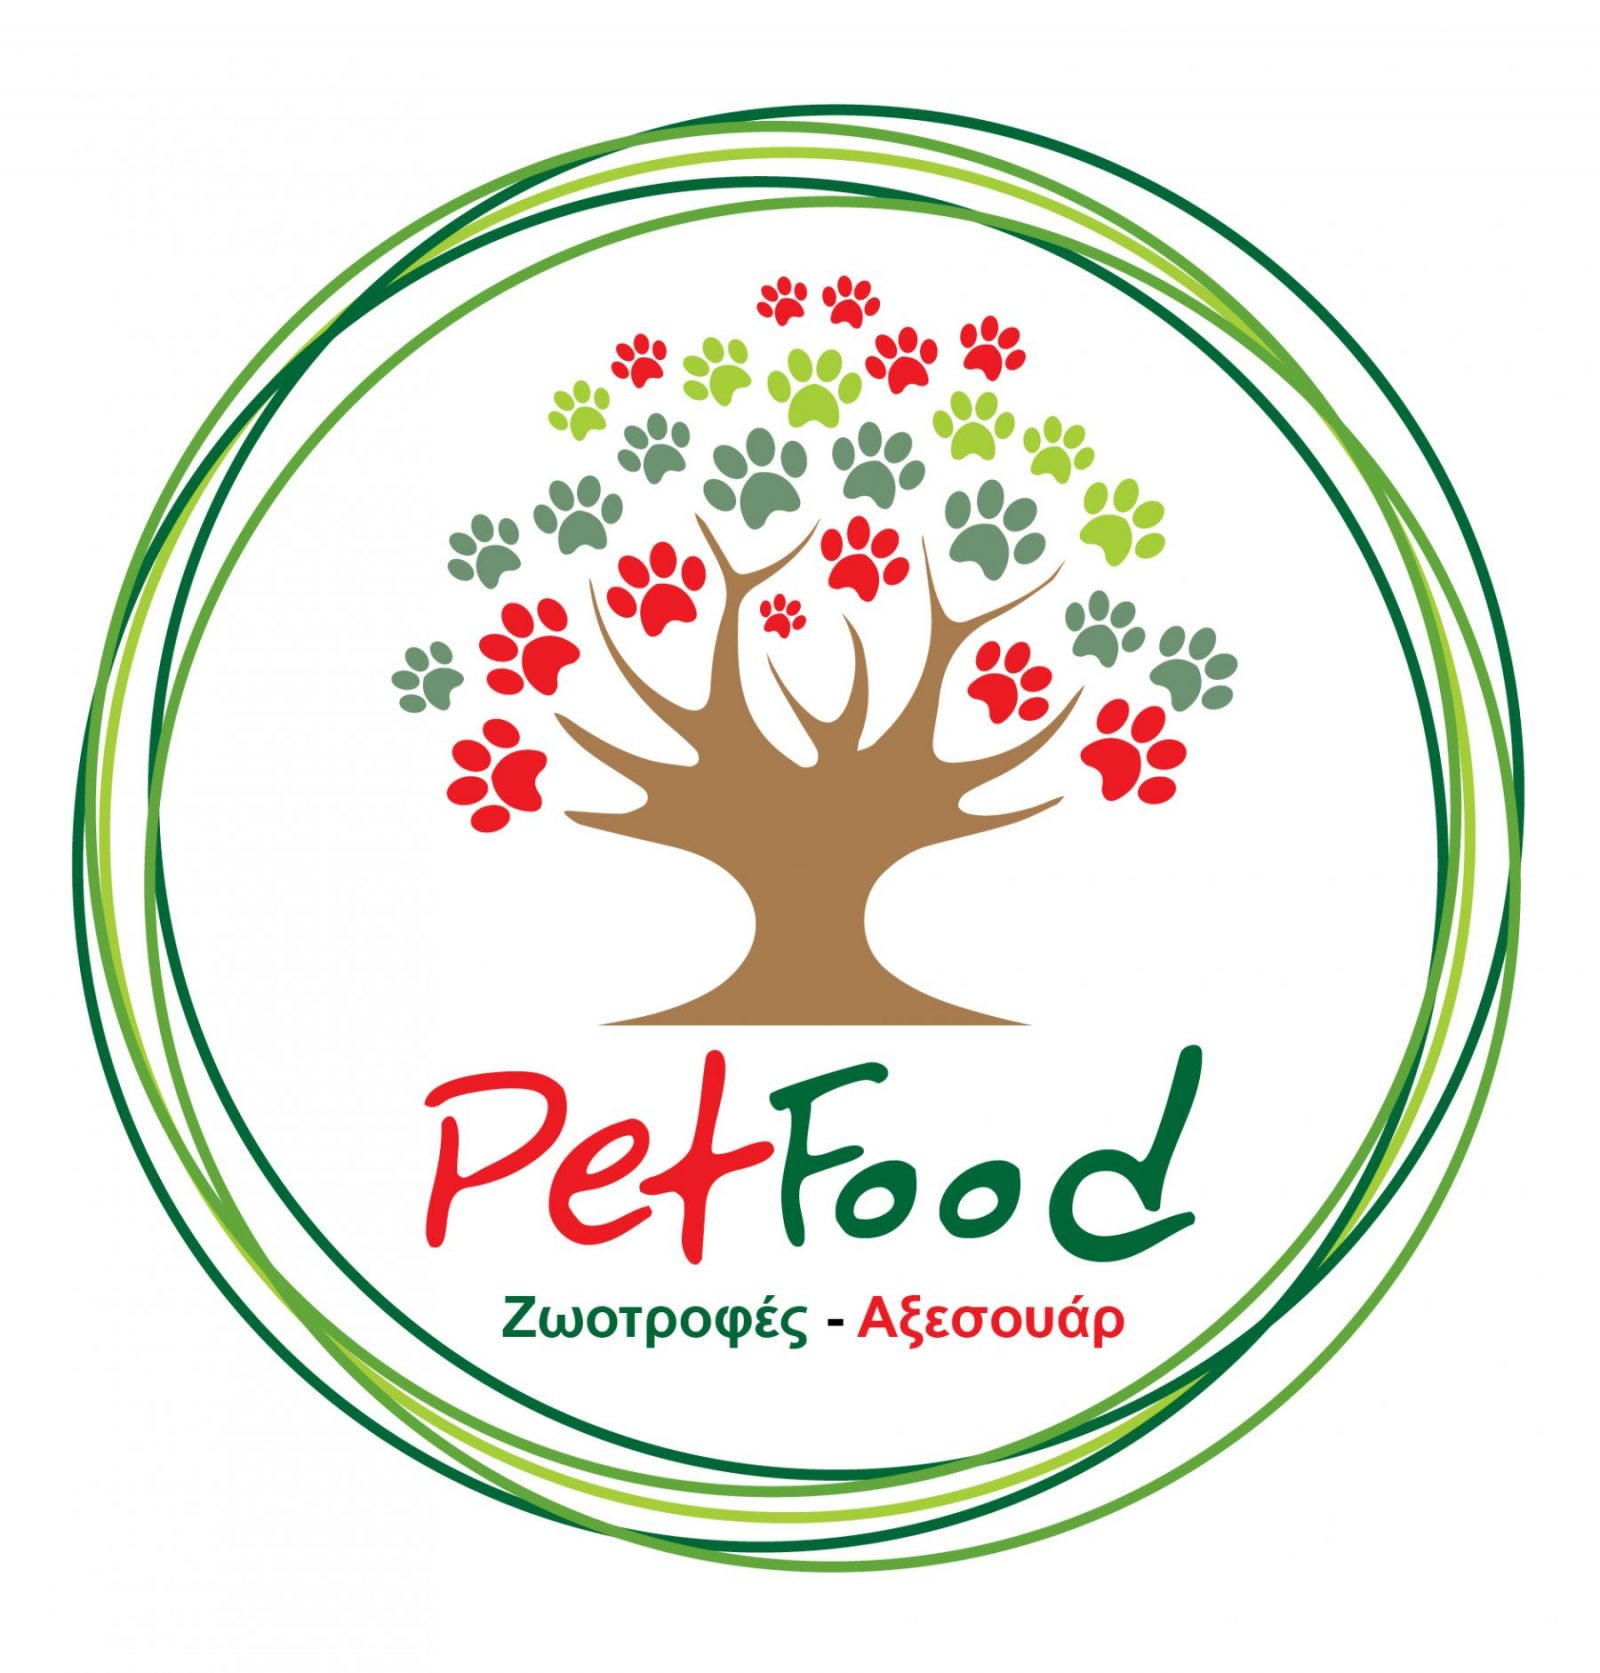 Pet food logo